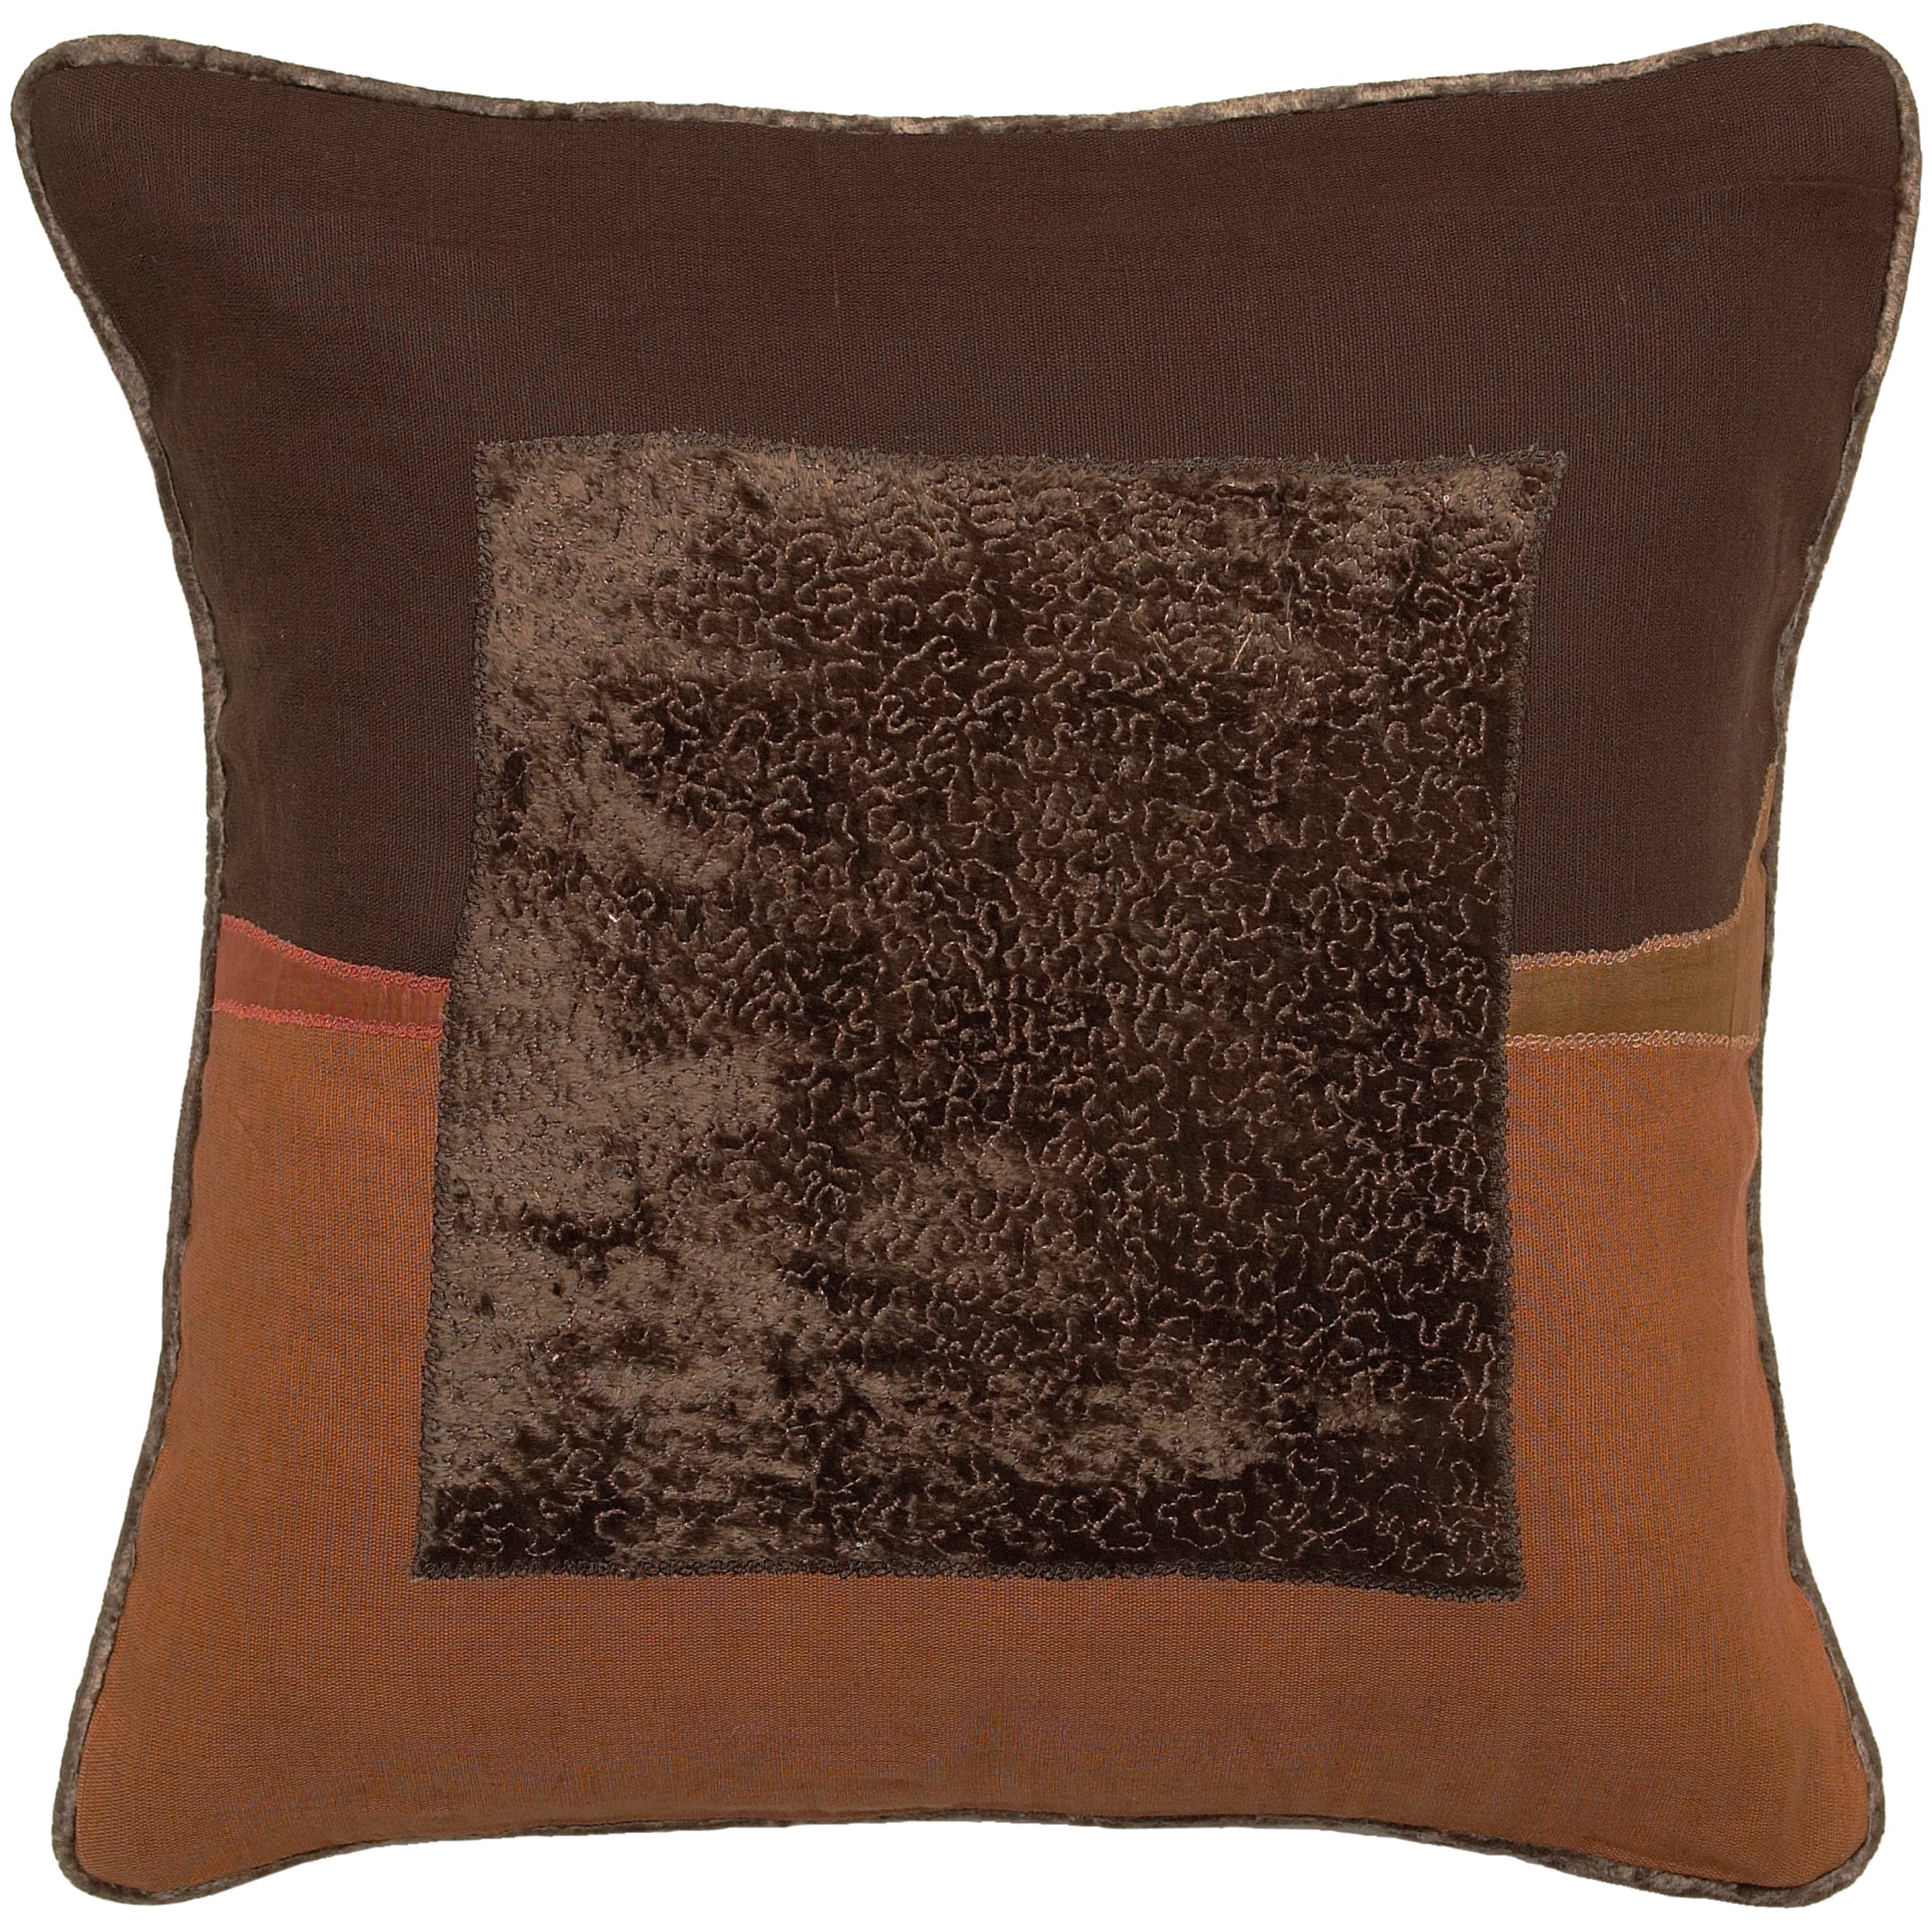 Down Filled 'Bomaderry' Decorative Square 18-inch Pillow